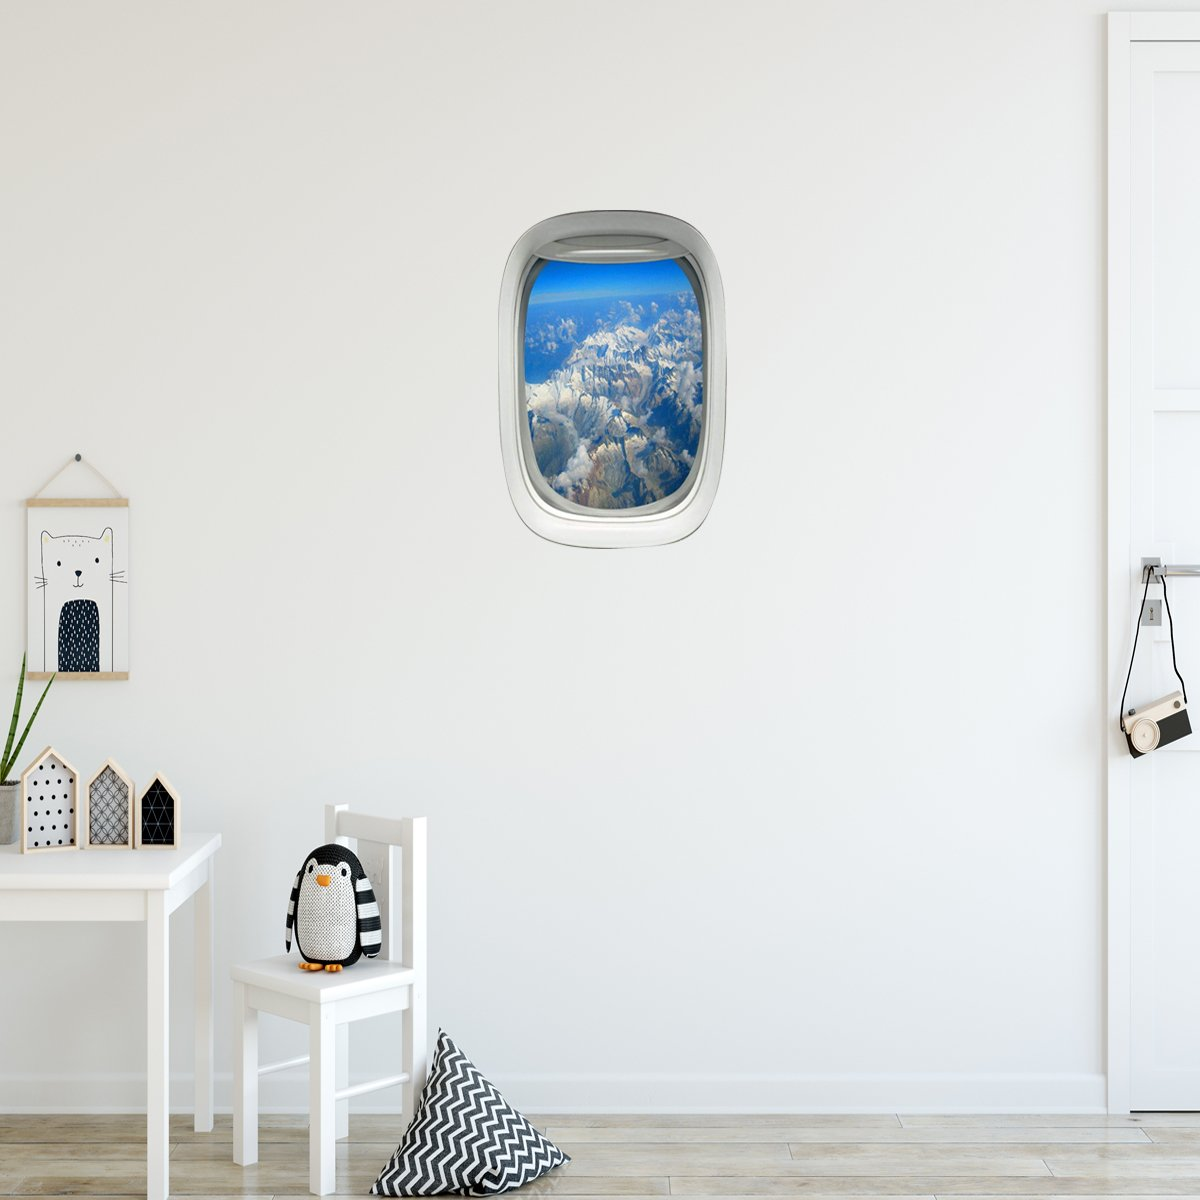 VWAQ Airplane Window Mountain View Peel and Stick Vinyl Wall Decal - PW25 - VWAQ Vinyl Wall Art Quotes and Prints